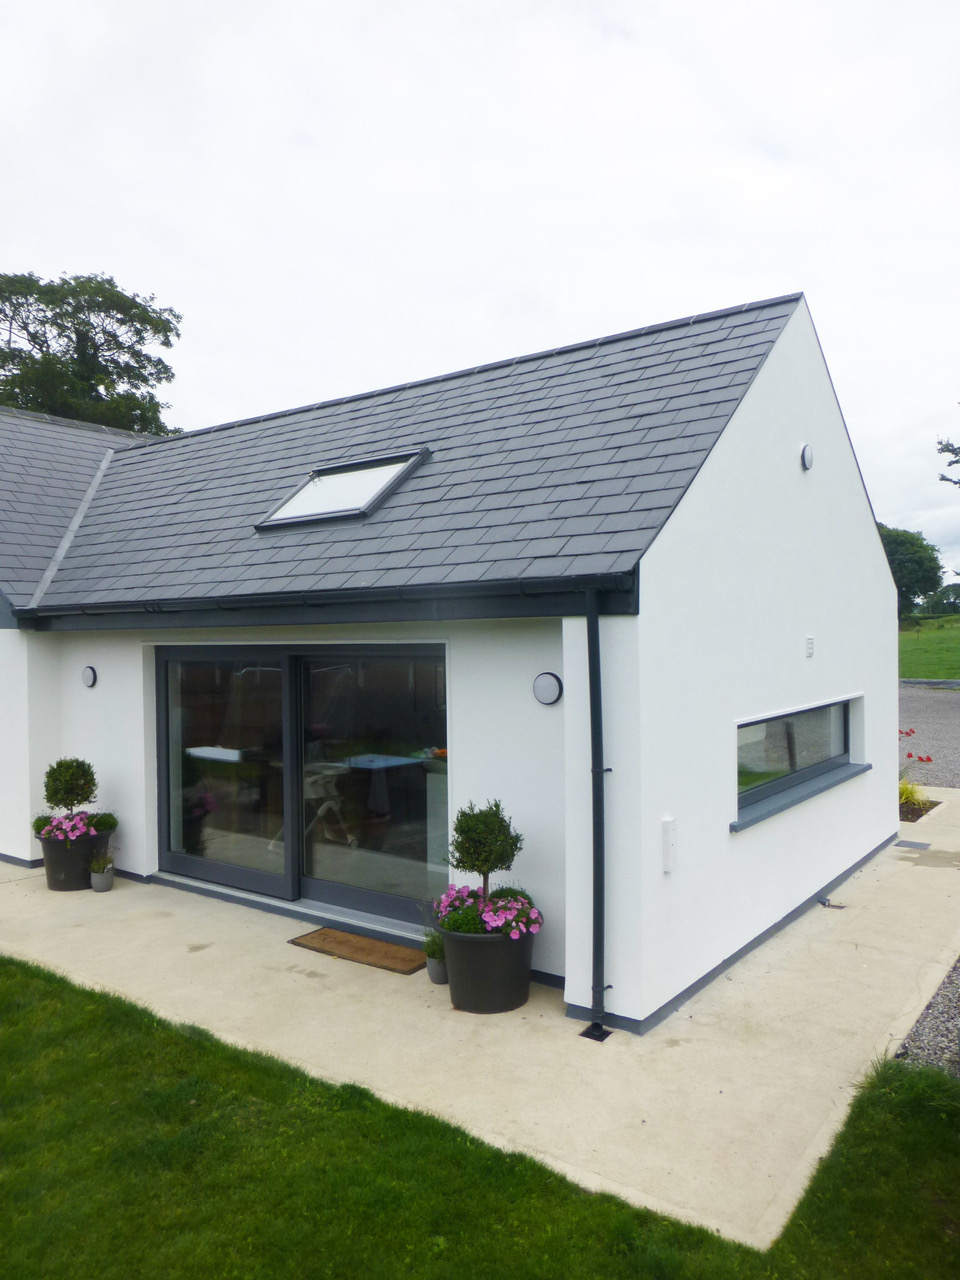 Bungalow House Extension + Renovation - West Waterford. Eoin O'Keeffe Architects